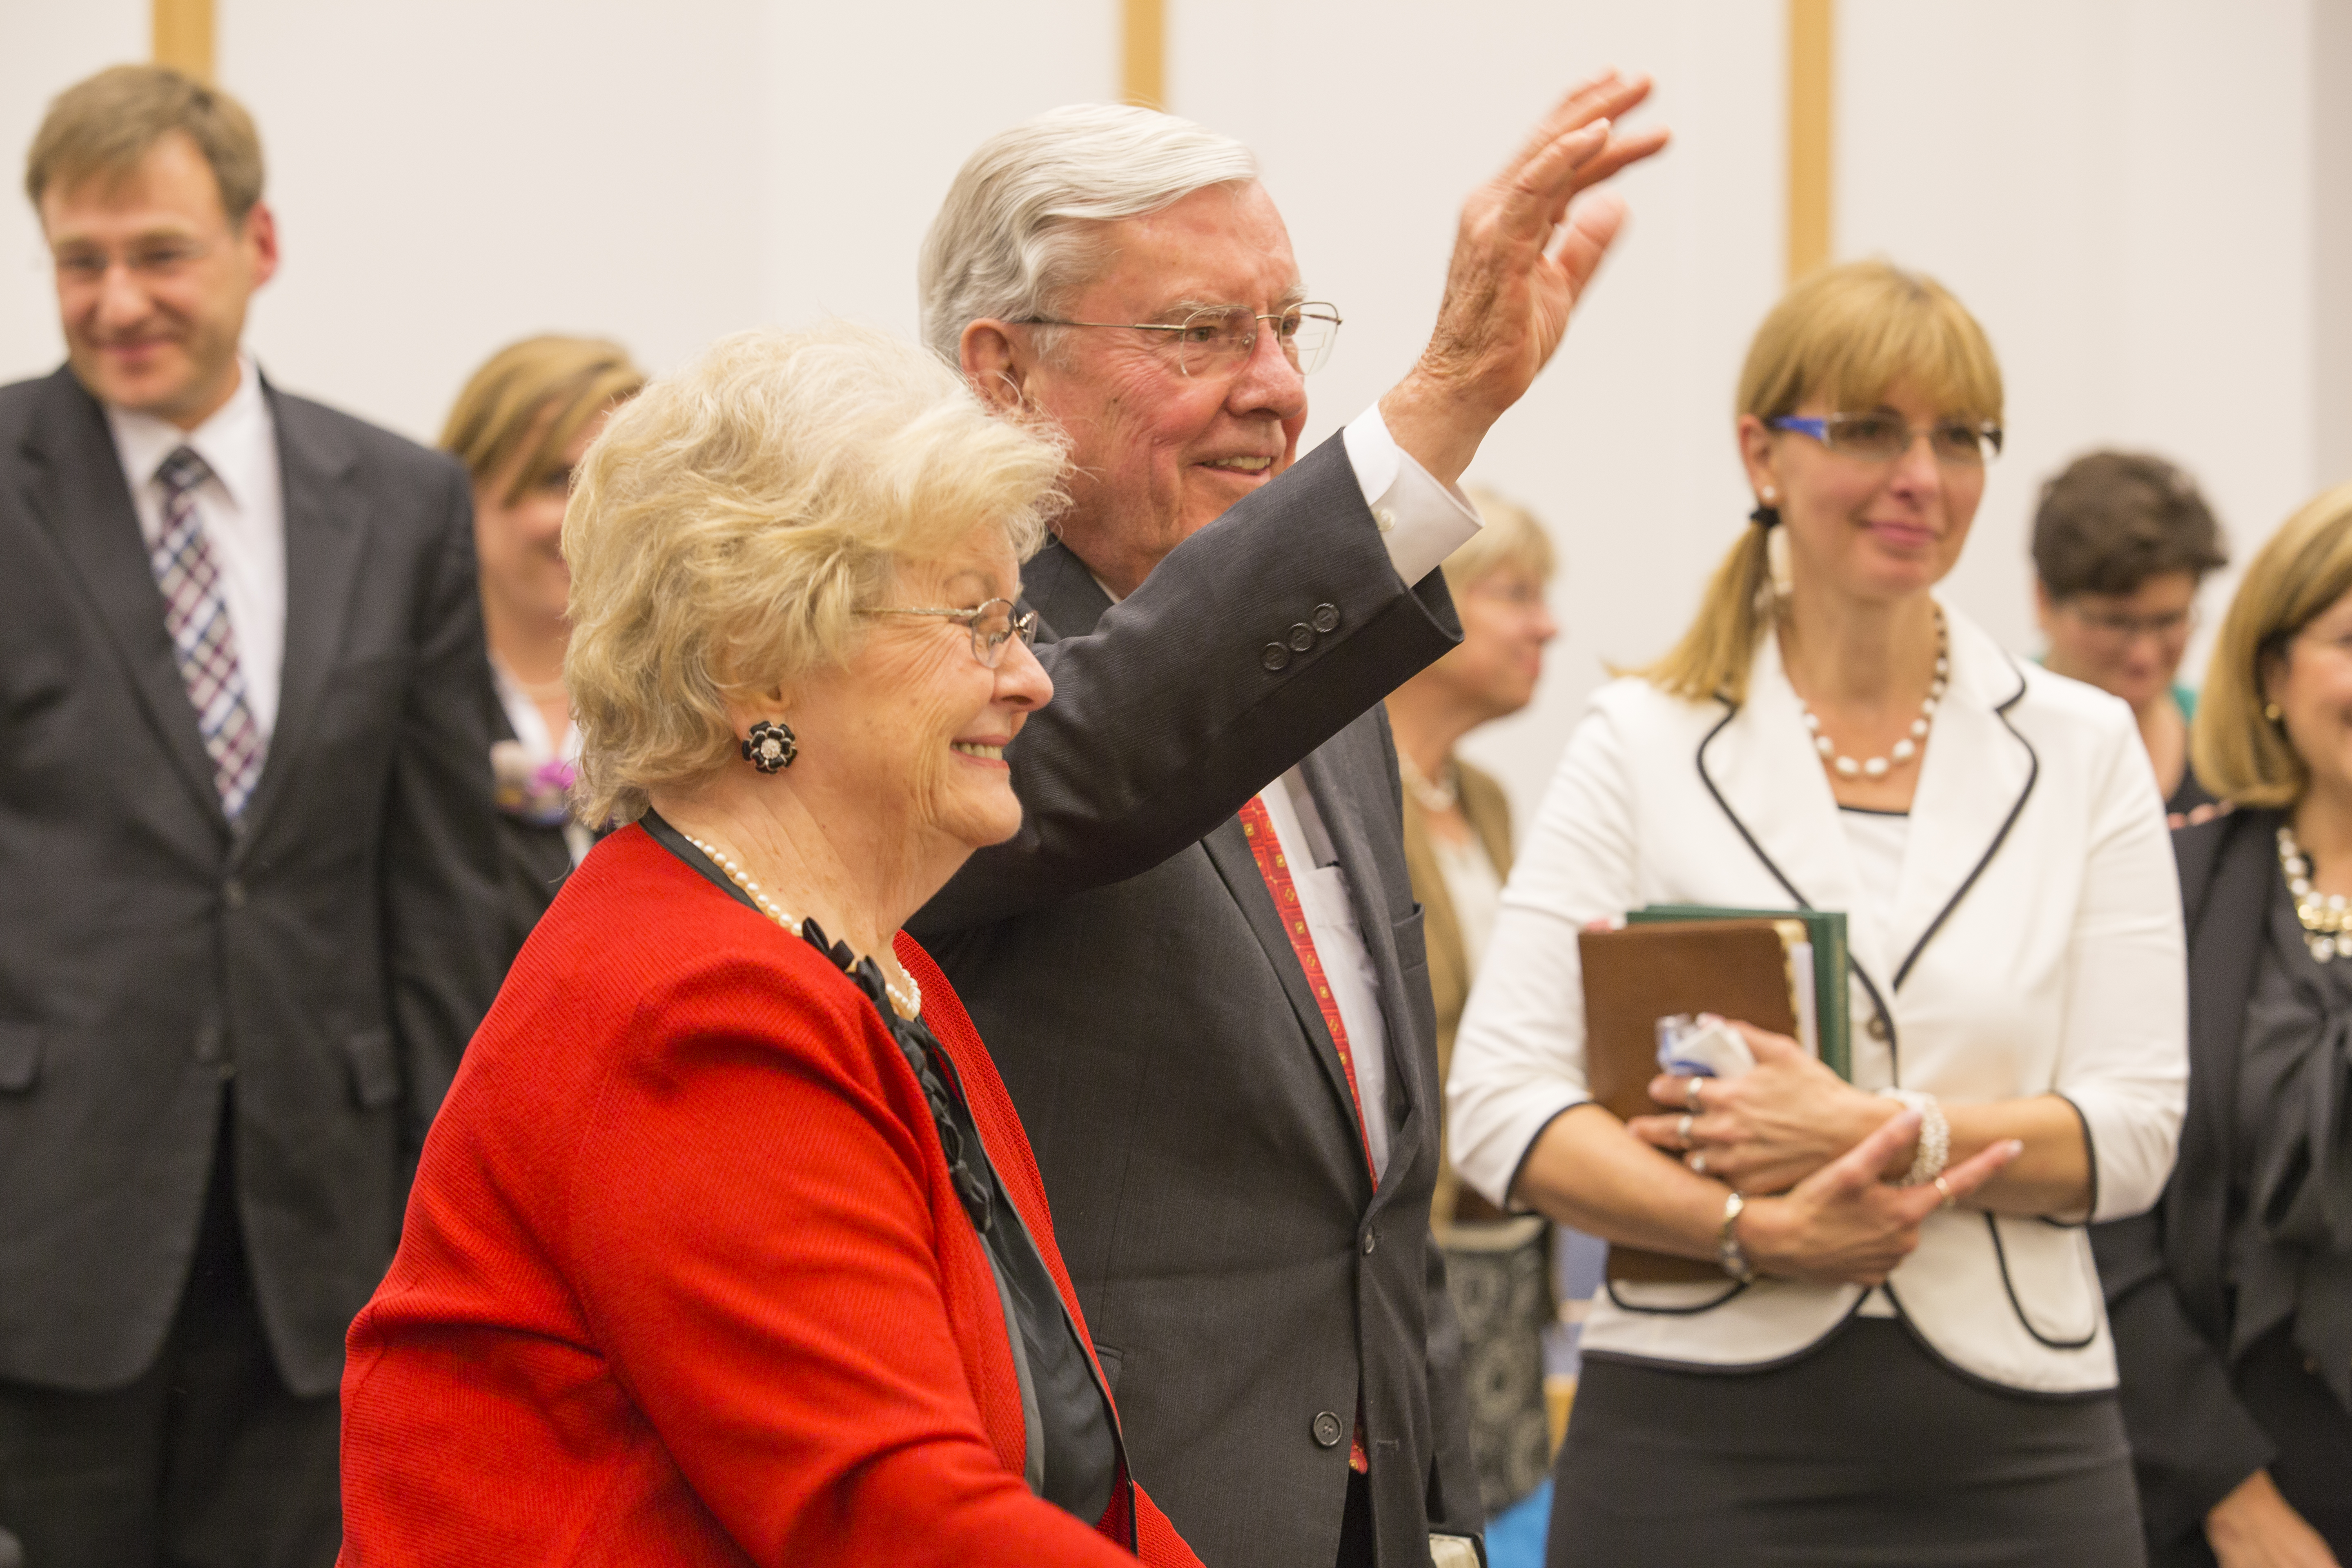 Elder M. Russell Ballard and Sister Barbara B. Ballard wave to congregation at the conclusion of the Europe Area Sisters Meeting in September 2014. The meeting originated in Frankfurt, Germany, and was broadcast throughout Europe.